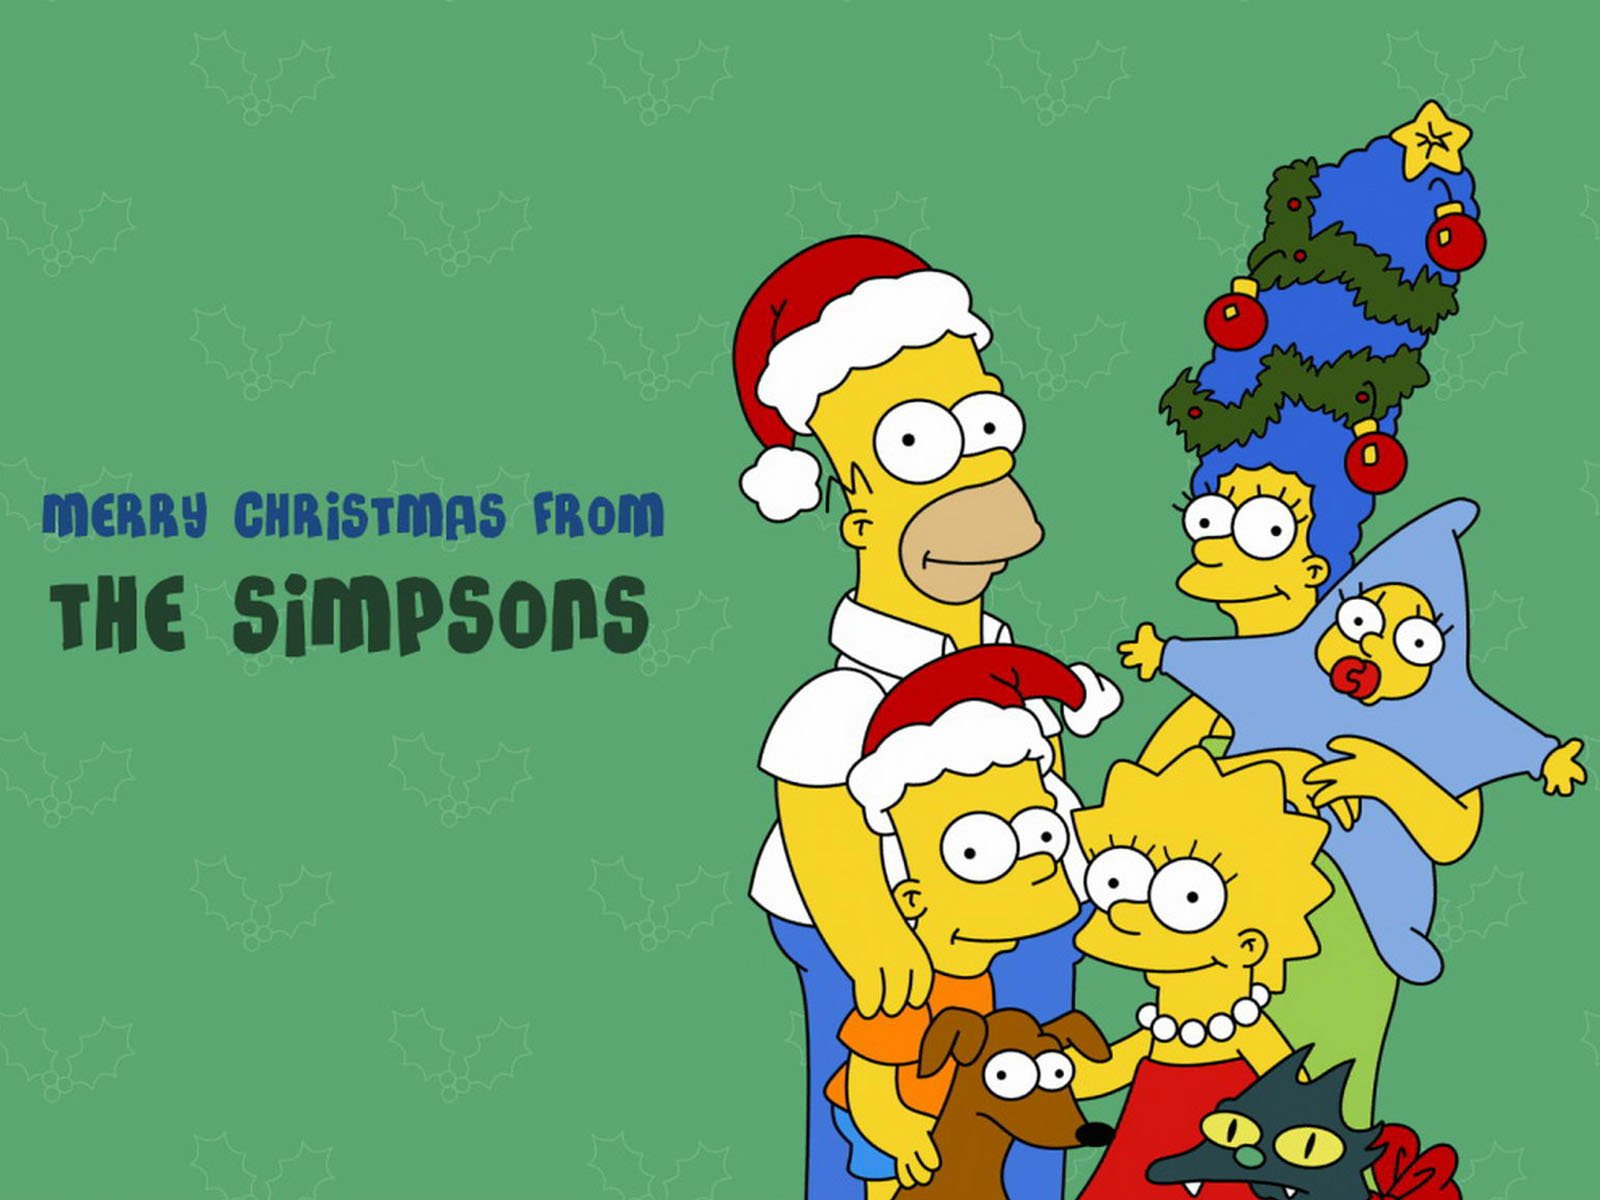 Merry Christmas From The Simpsons Wallpaper : Christmas